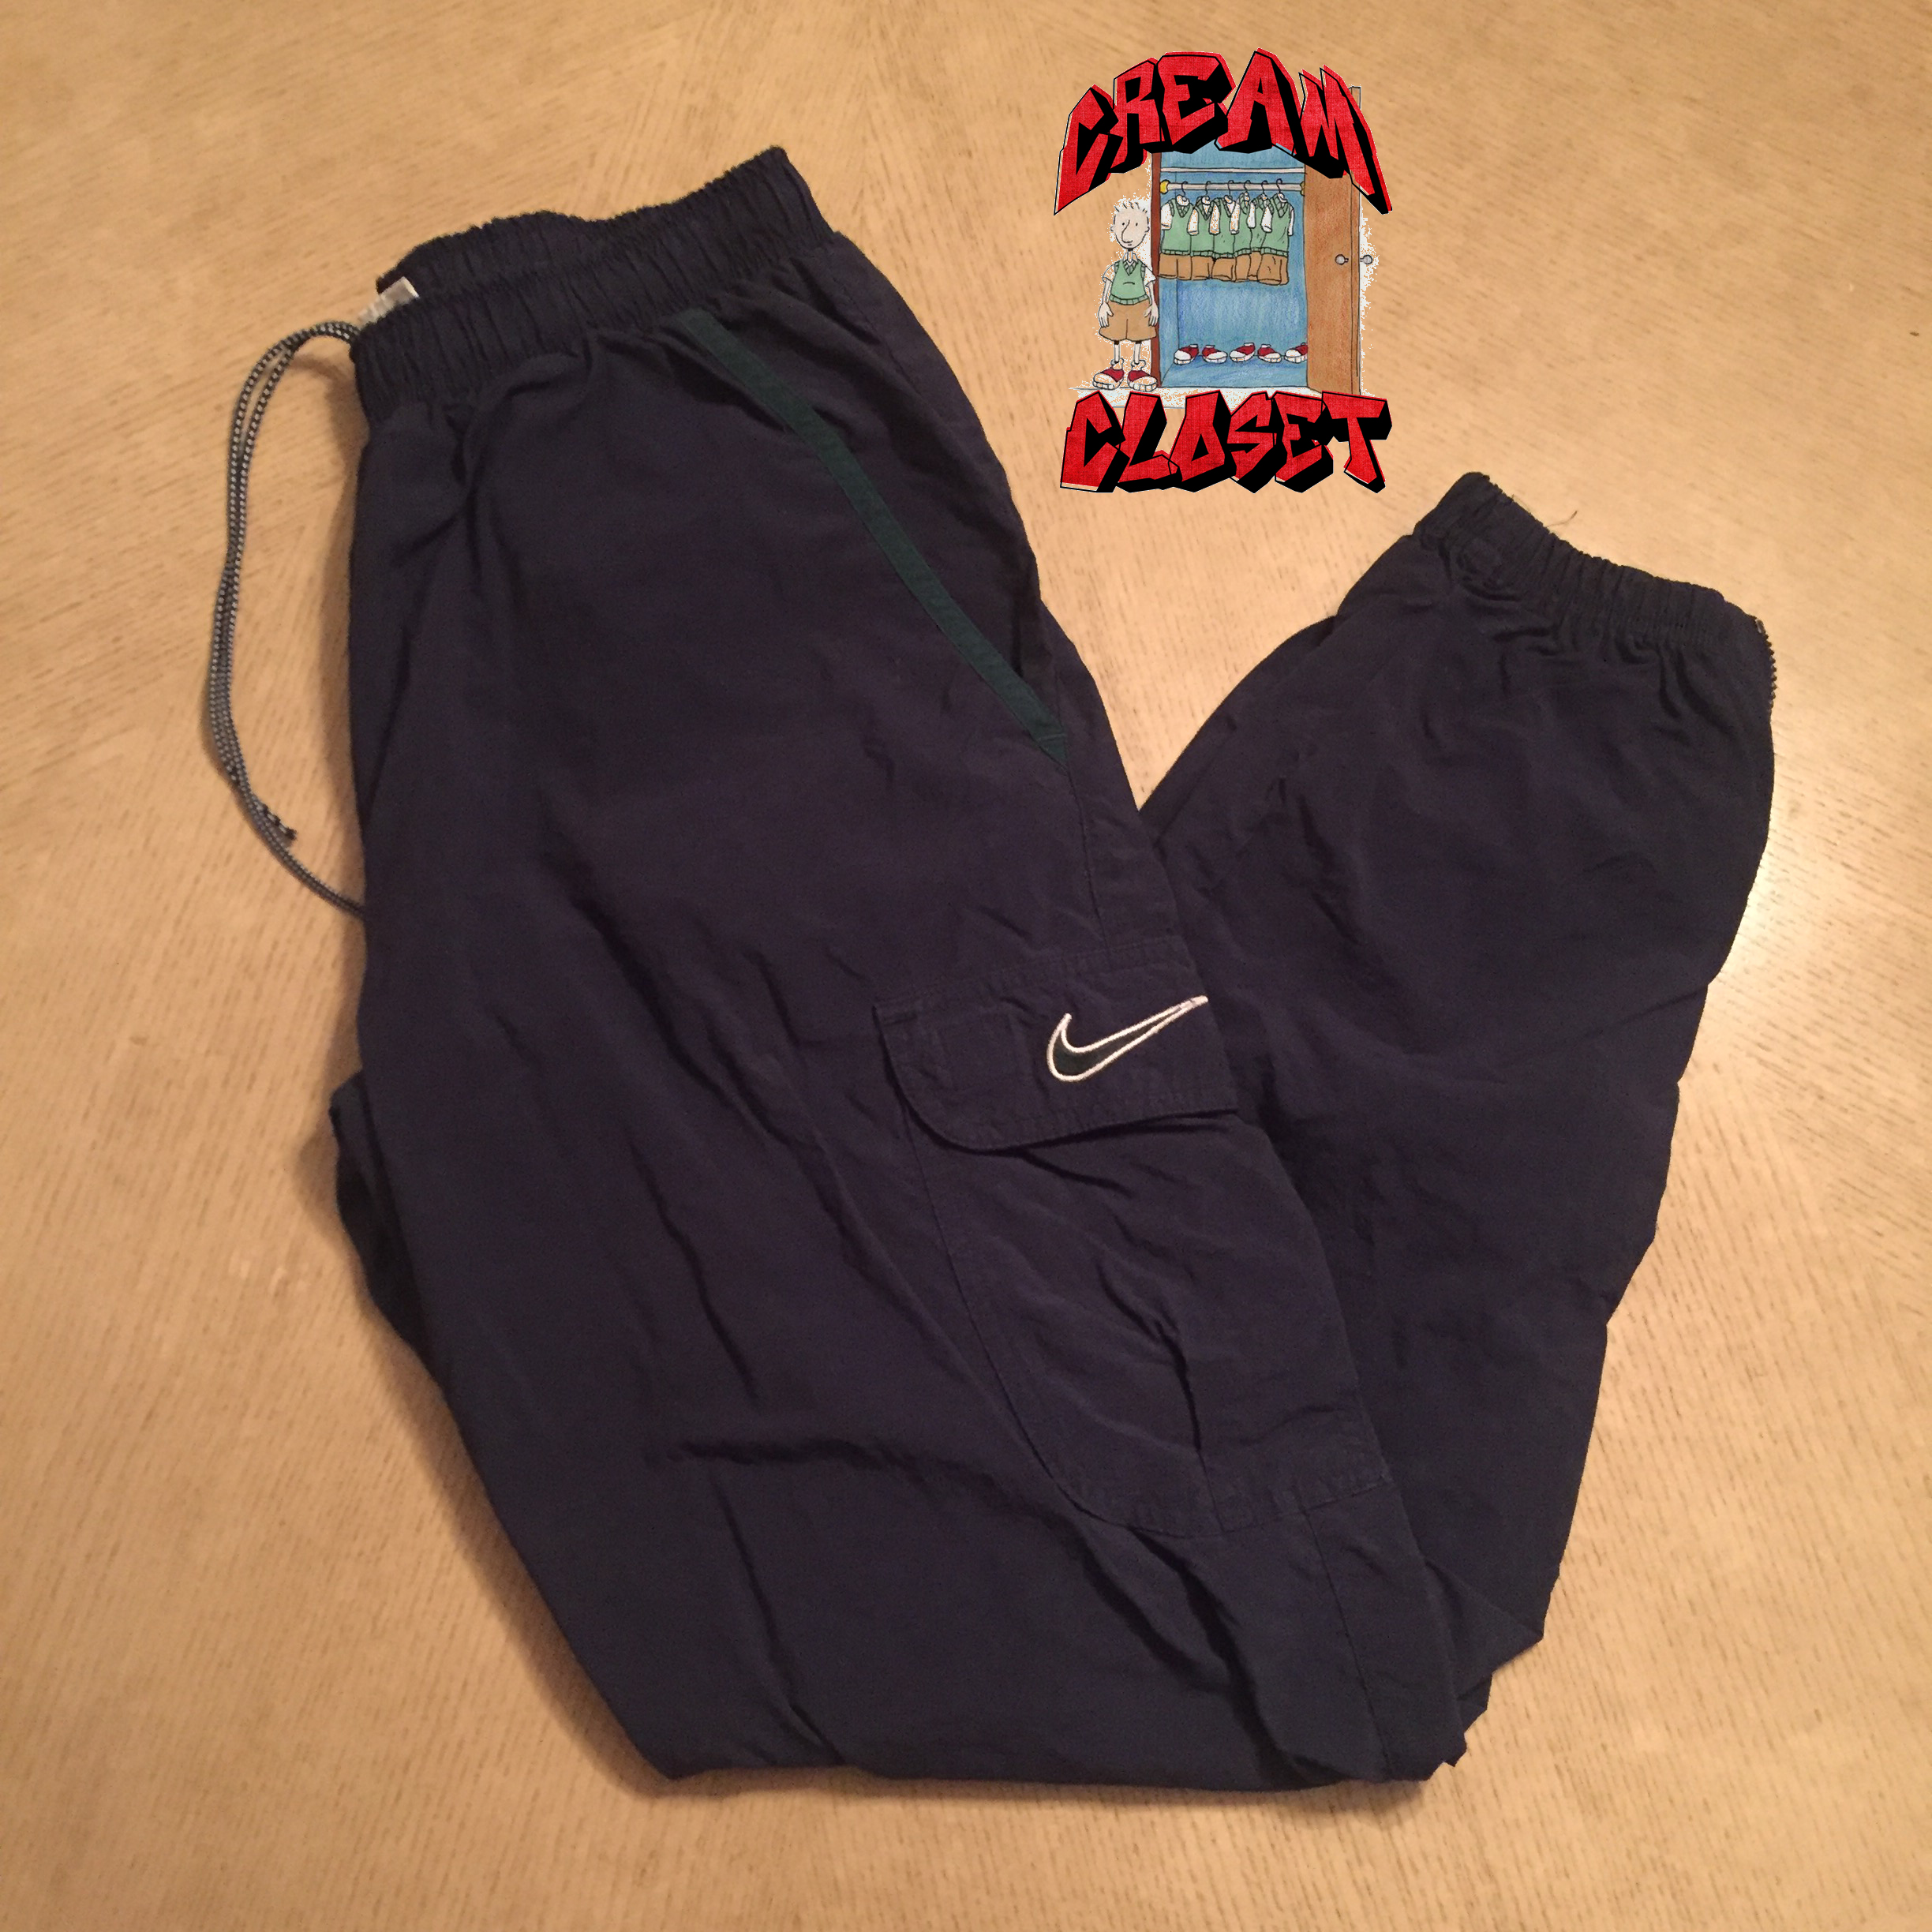 05c18dd9027a4 Nike Vintage Nike Embroidered Swoosh Cargo Track Pants In Navy Blue ...